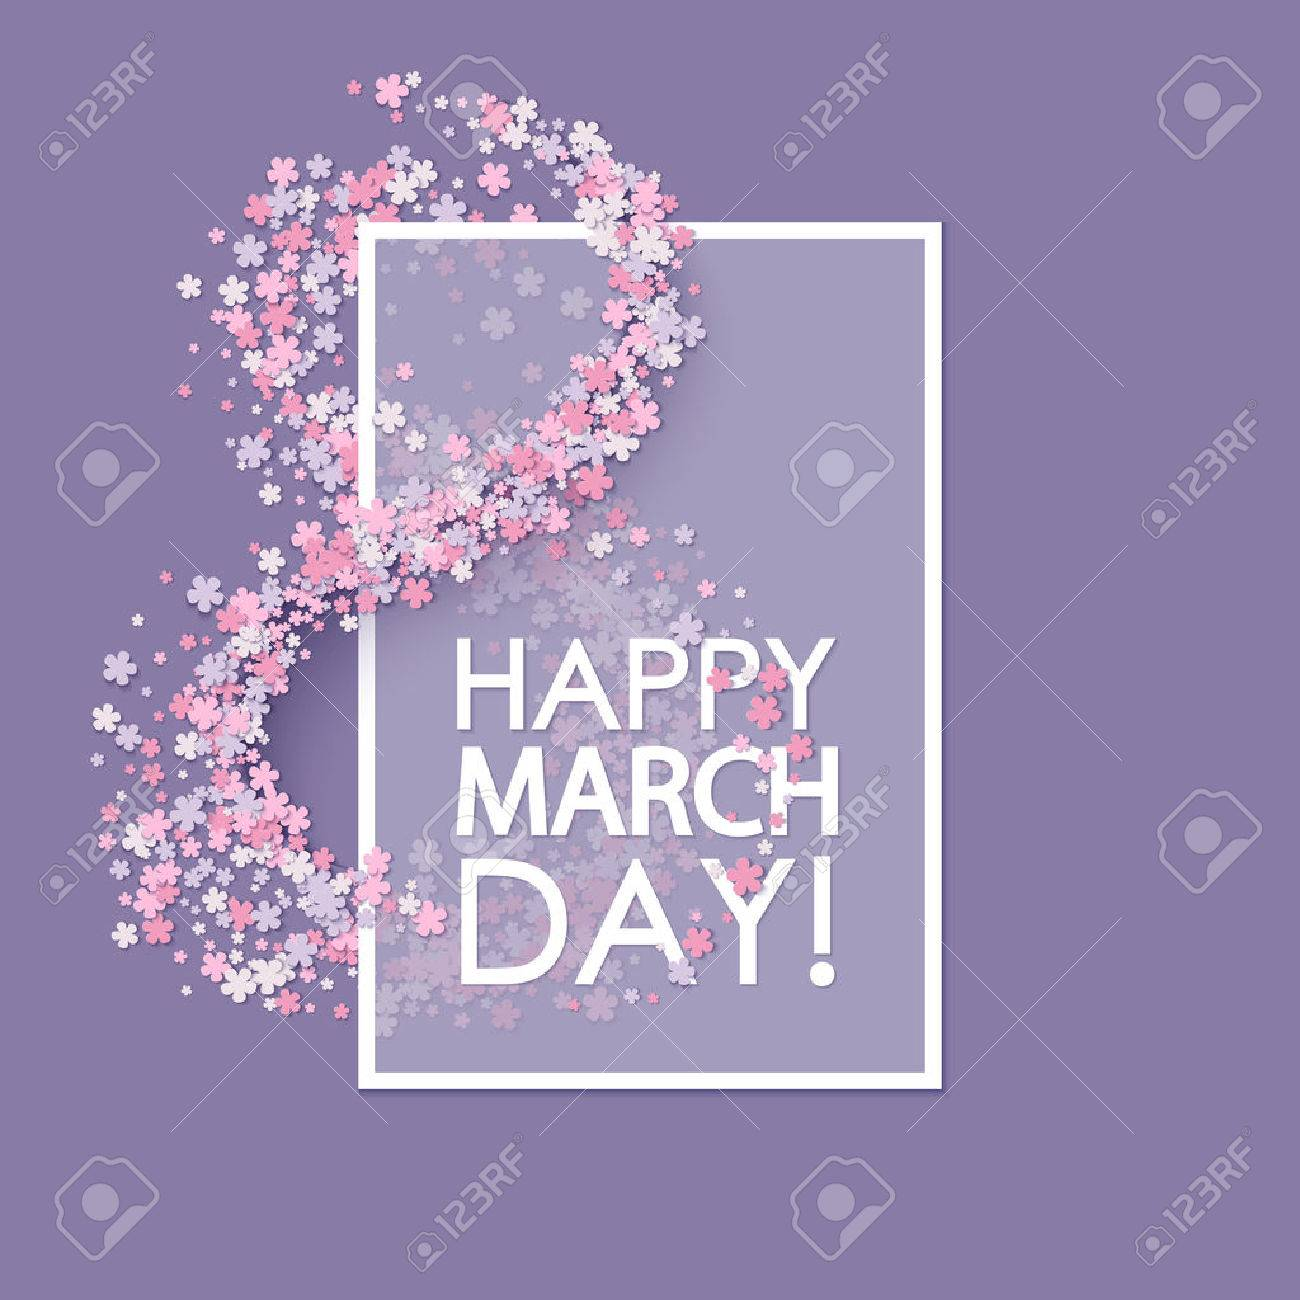 Women day background with flowers - 50539461